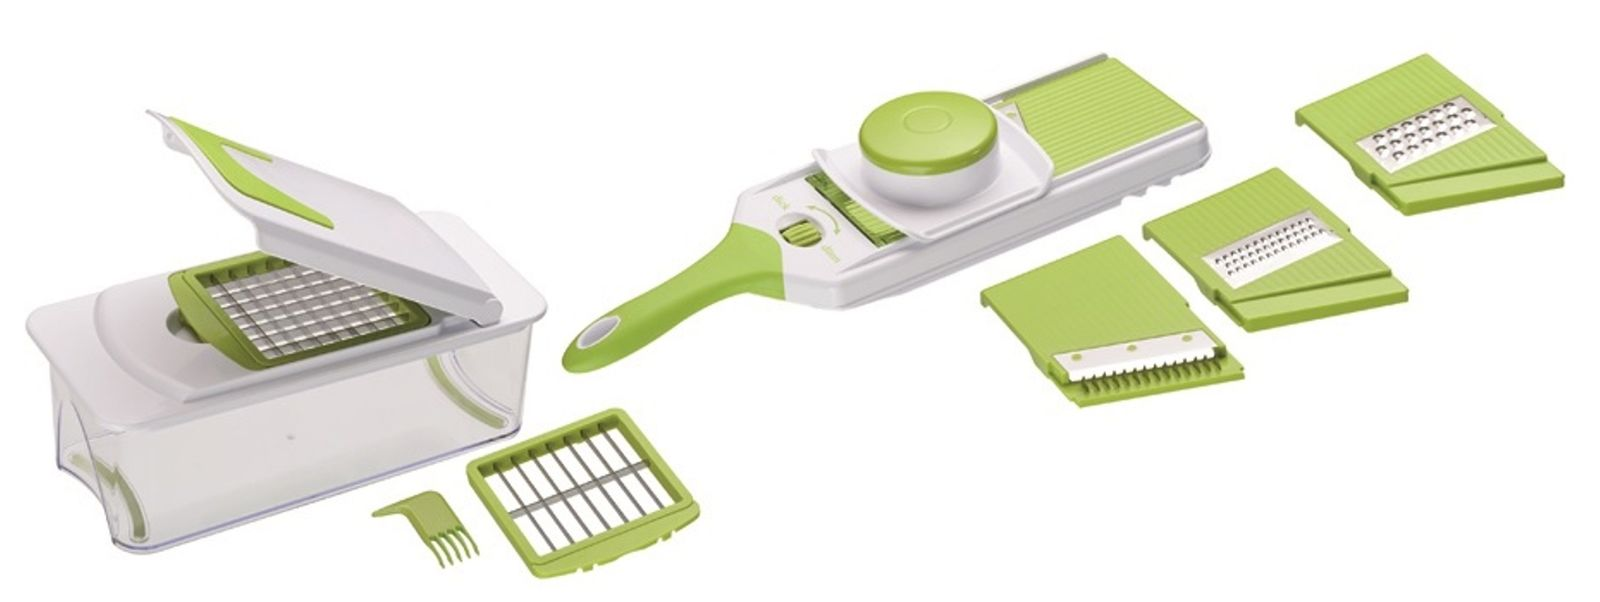 Mandoline Slicer Grater - 15 pcs. Multi Blade Food Chopper & Vegetable Cutter